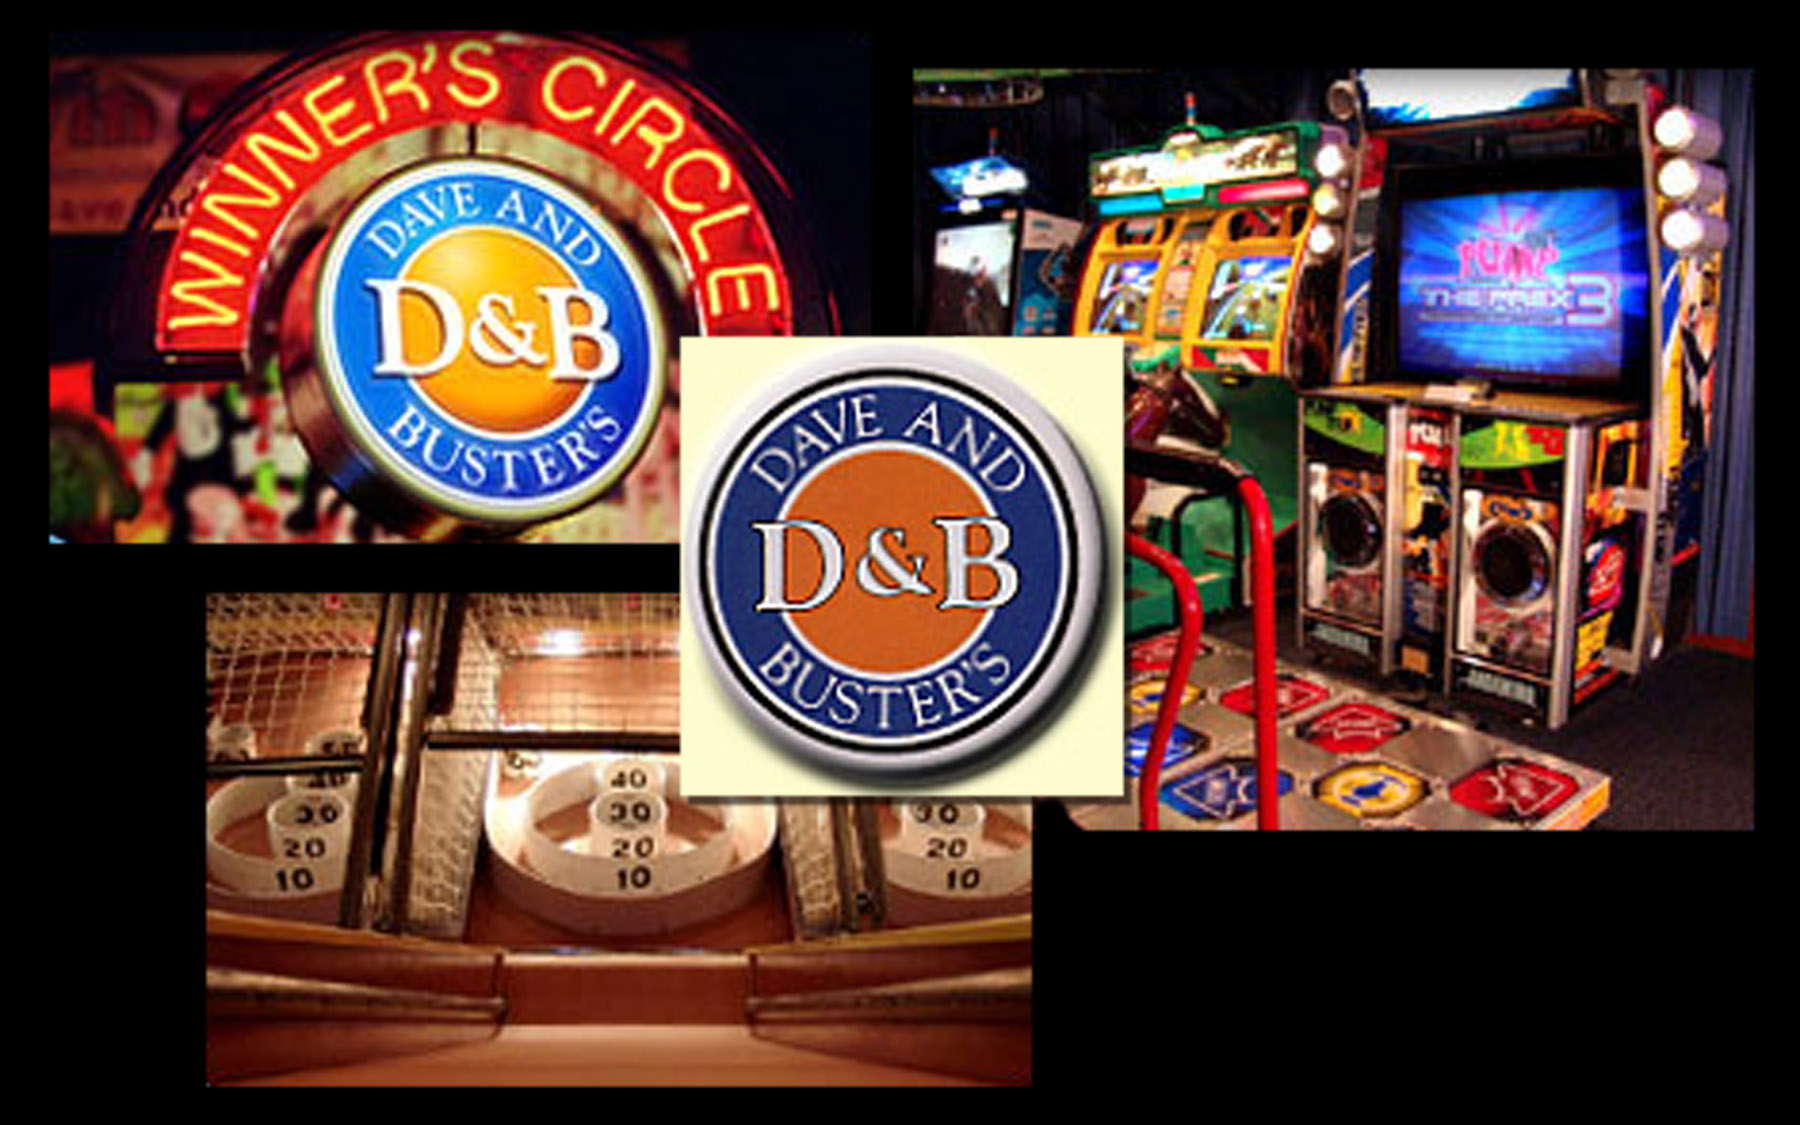 Dave & Buster's in Maple Grove, MN